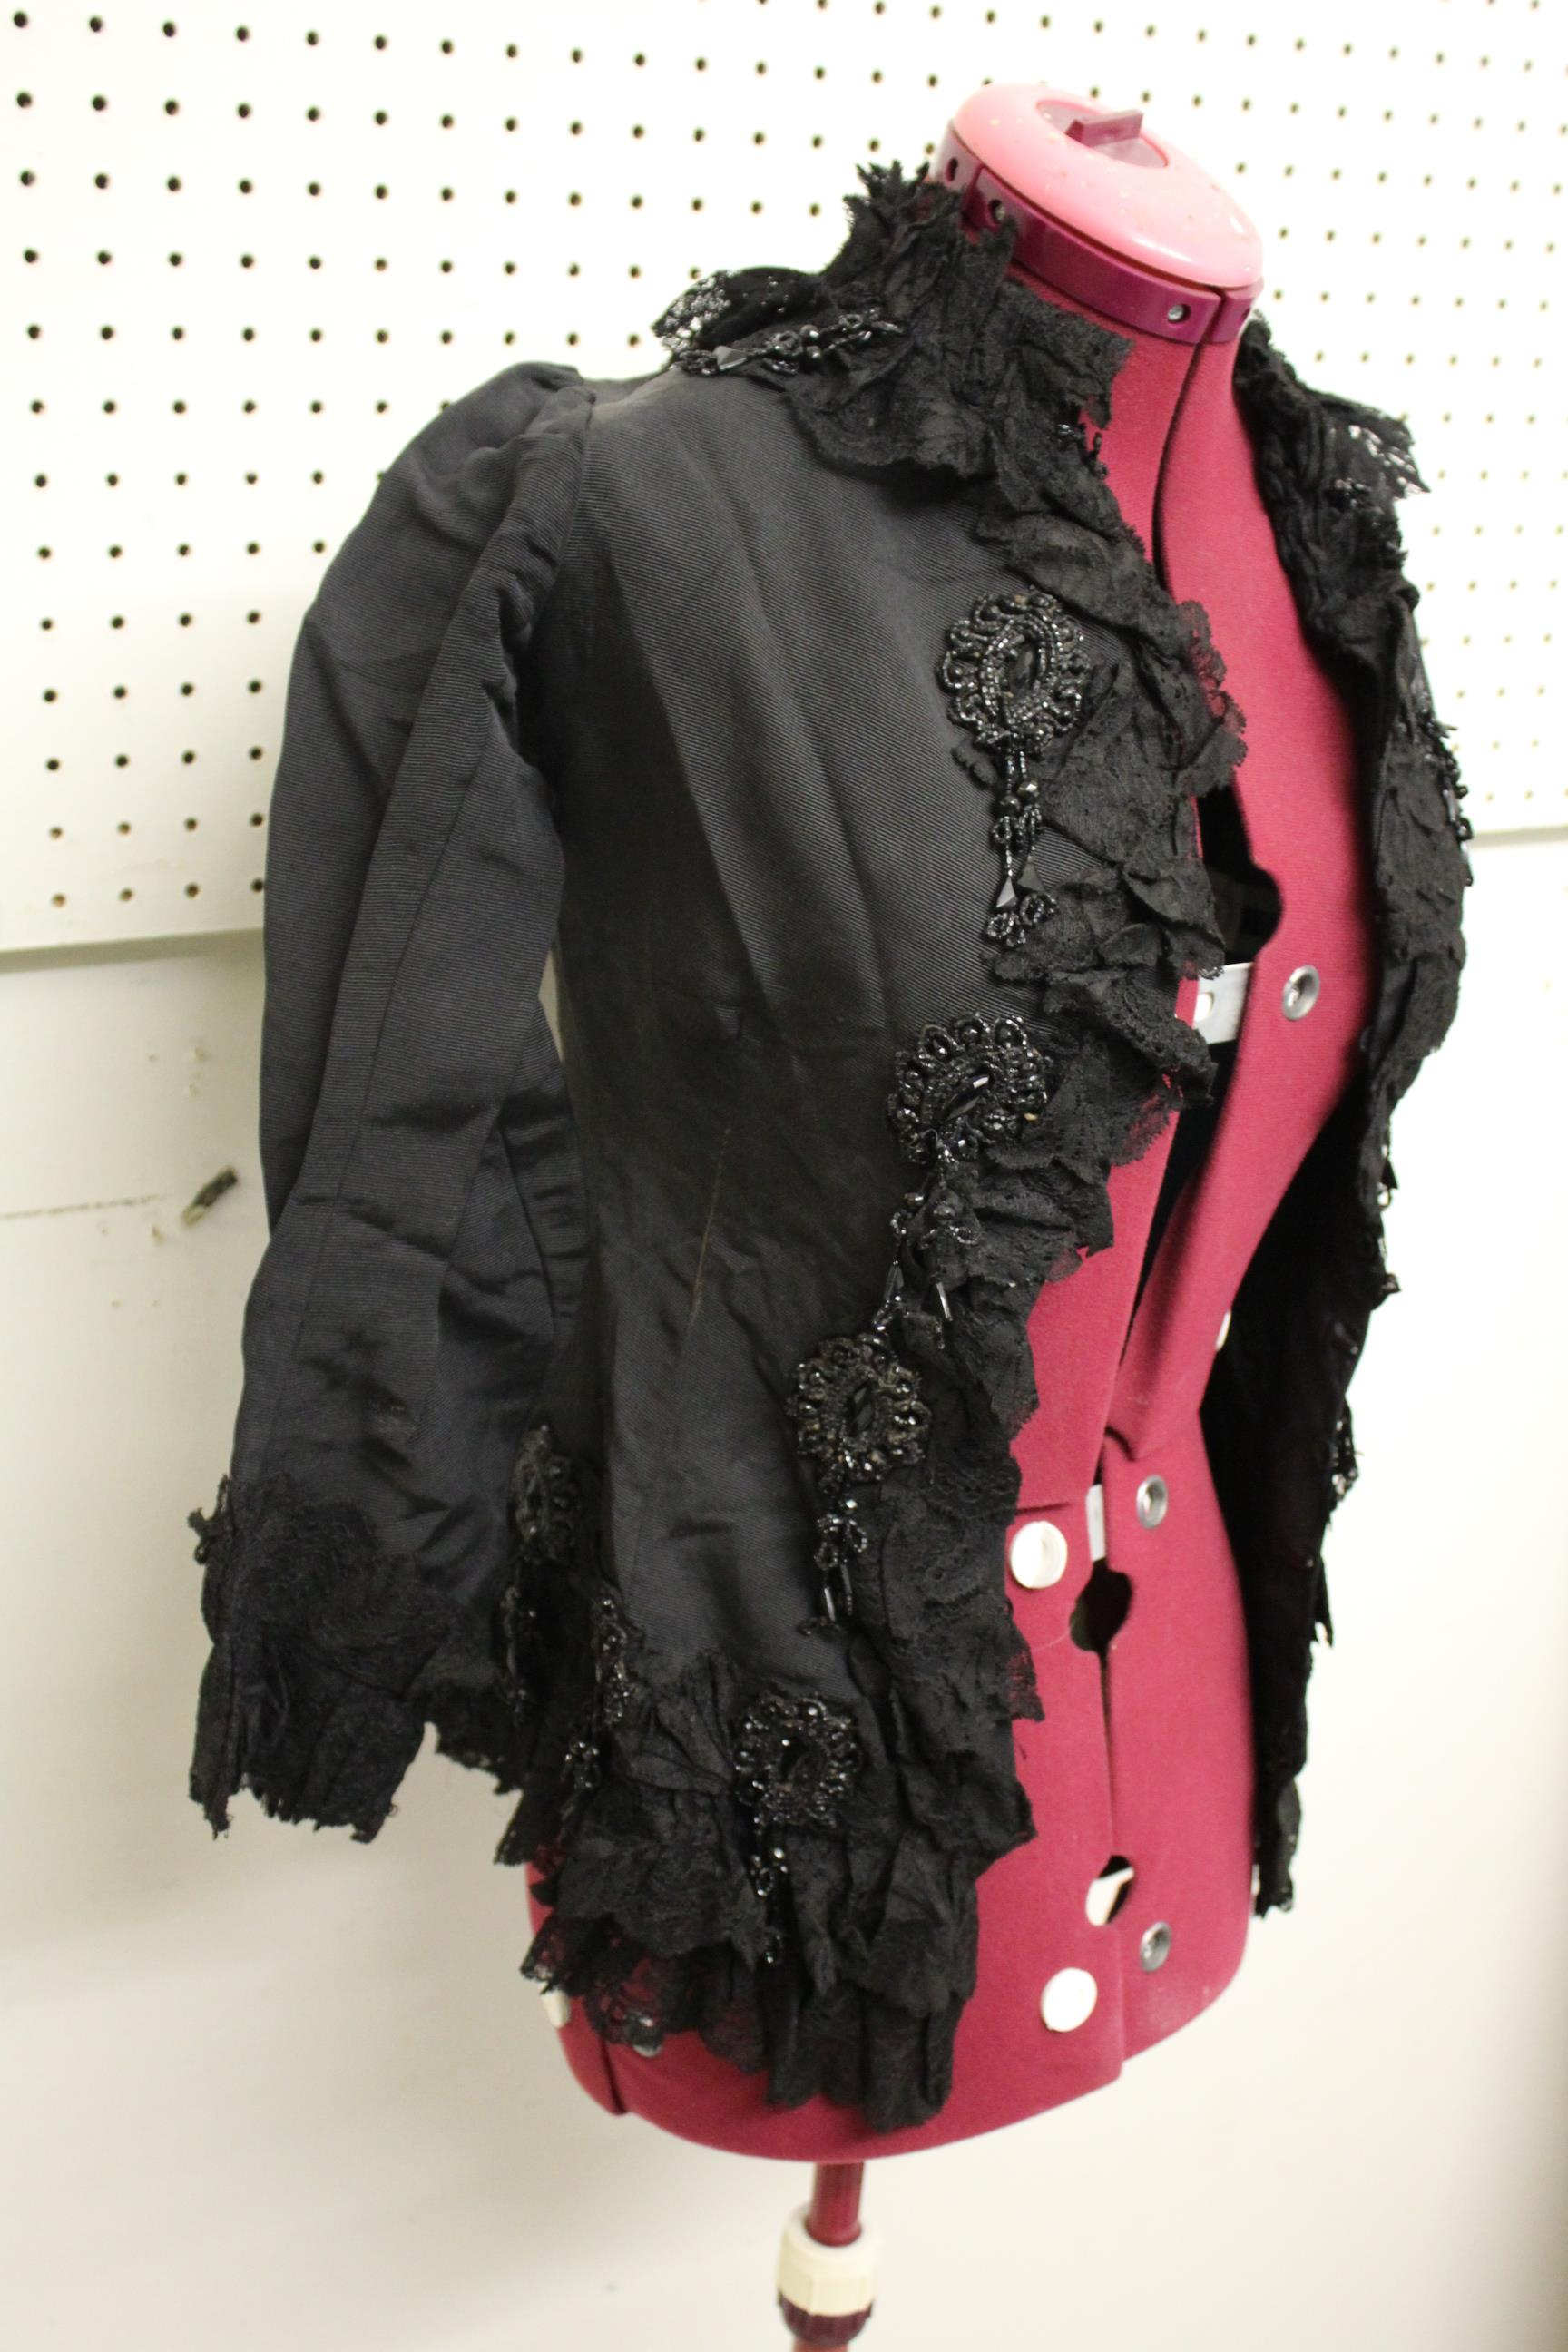 19THC JACKET a black grosgrain jacket embellished with lace and bead embroidered motifs, by Cole - Image 2 of 5